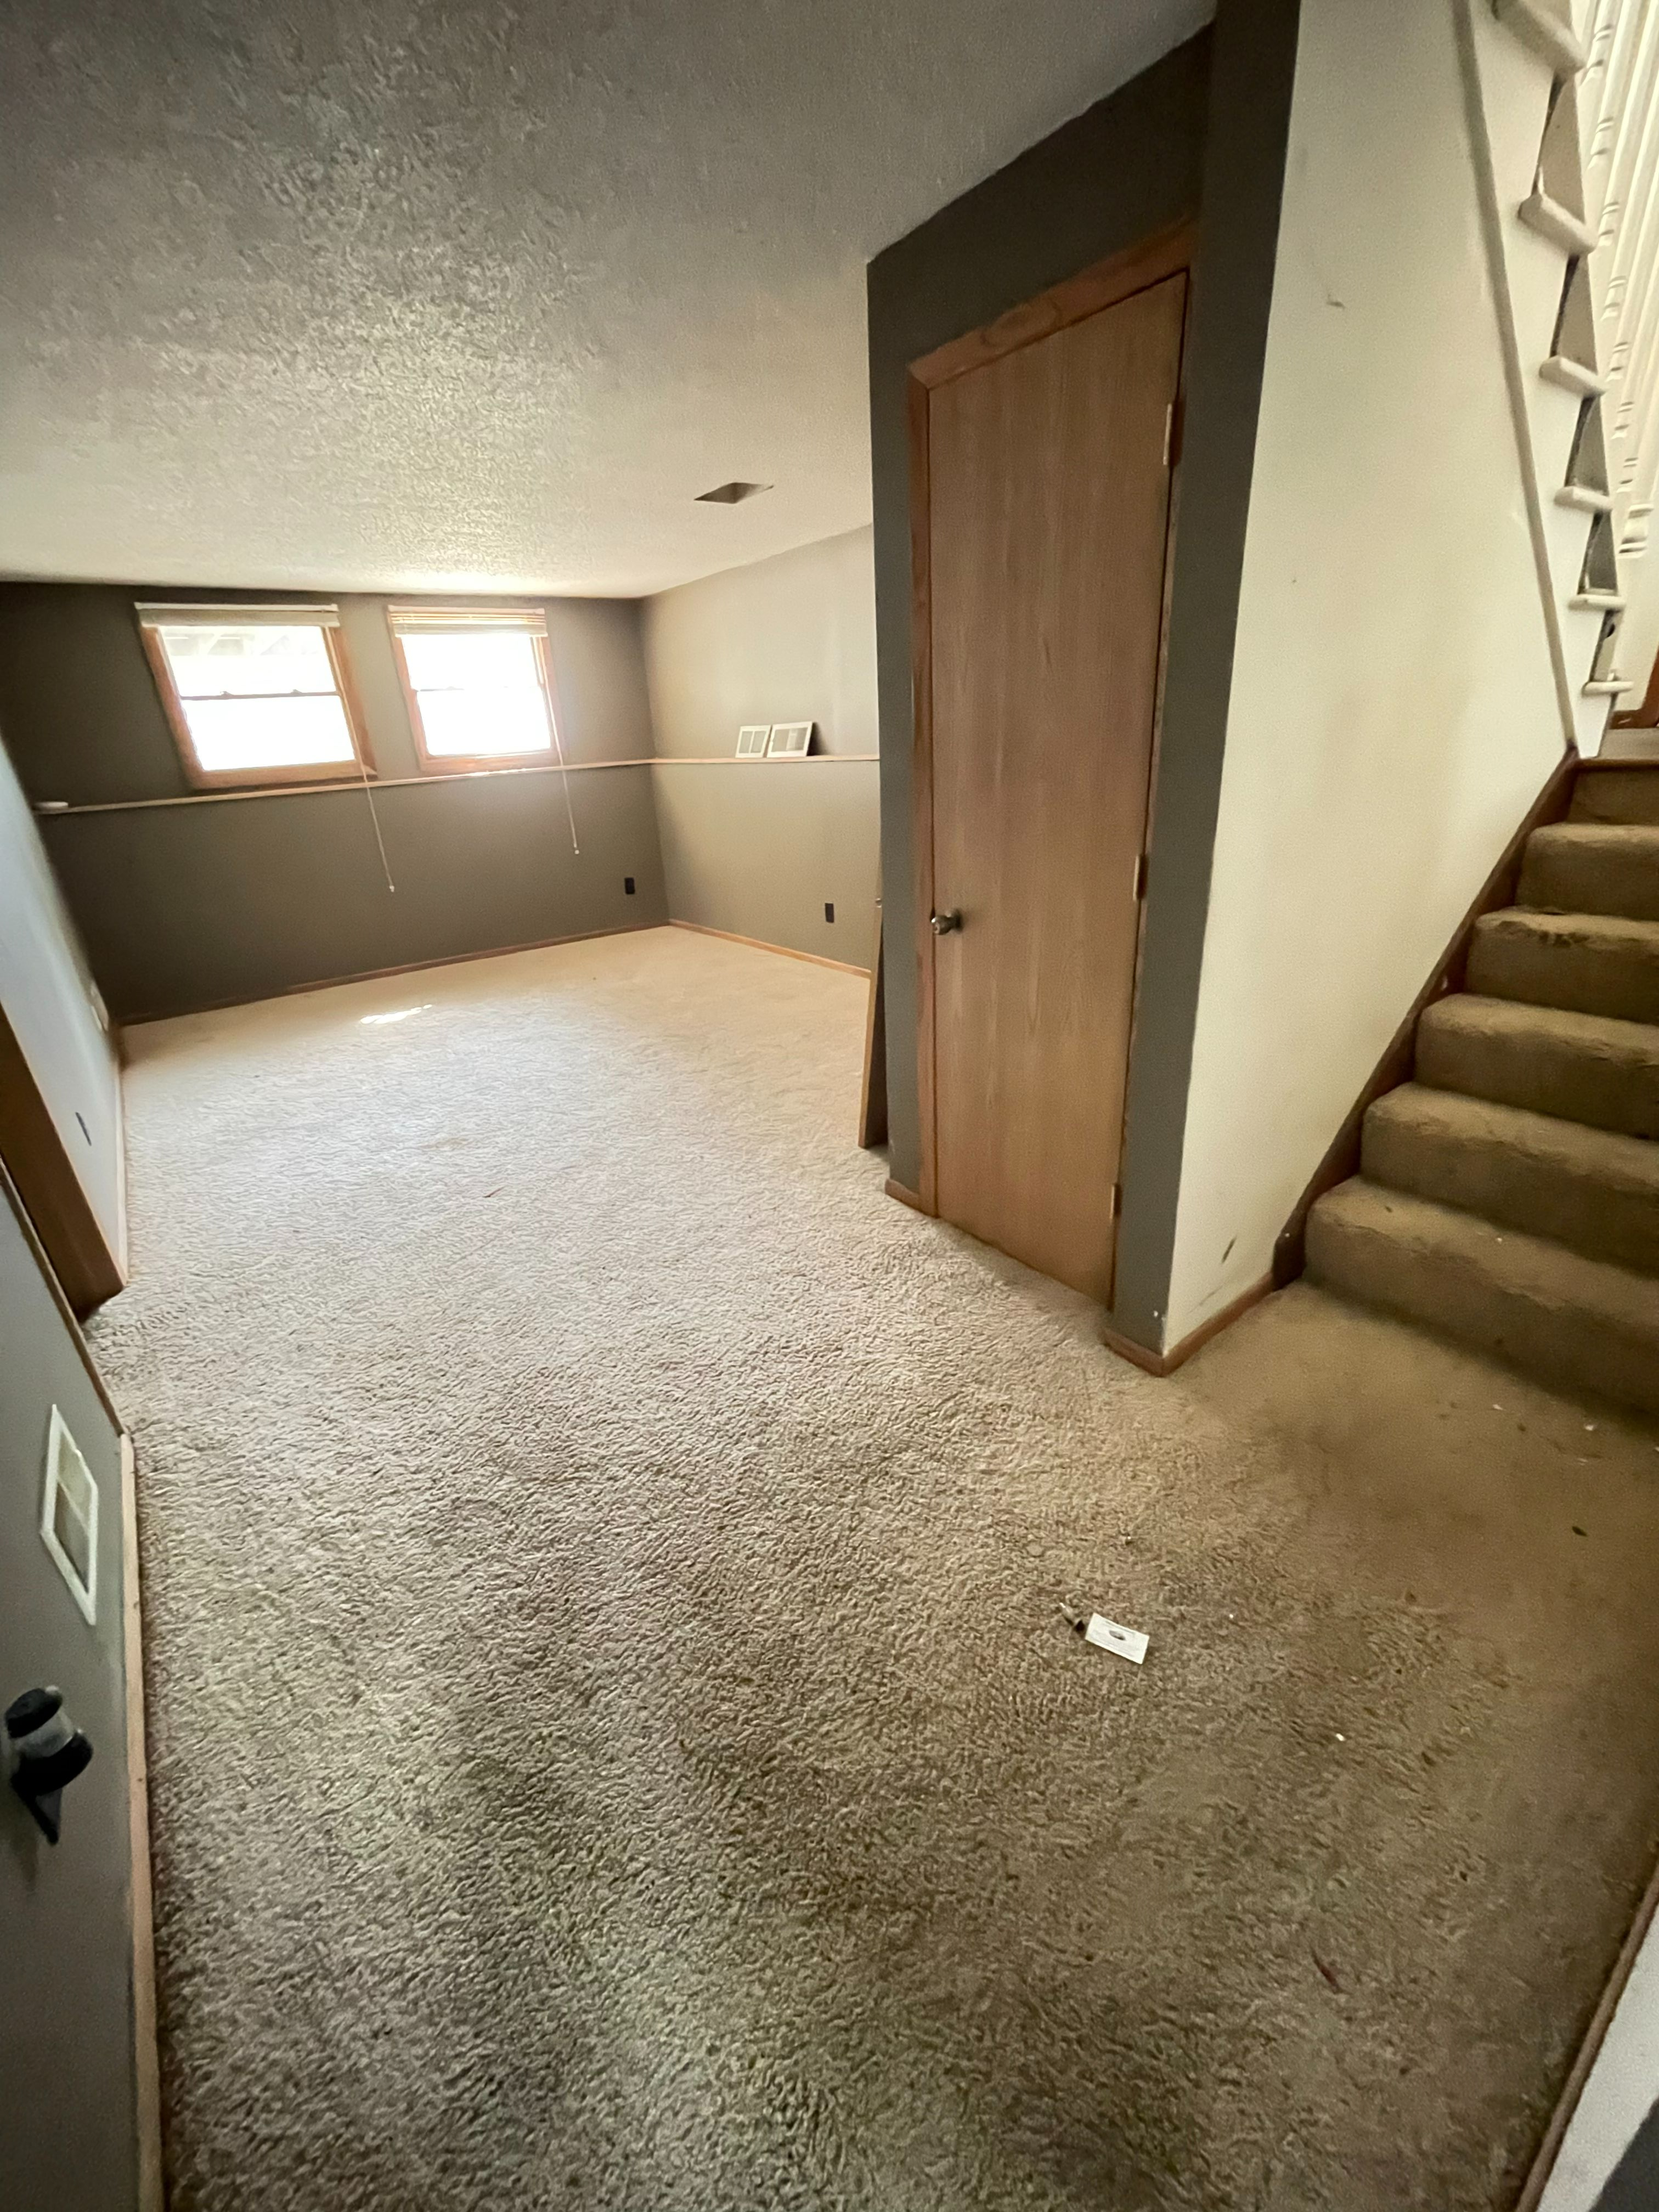 808 Newell Dr (Image - 5)